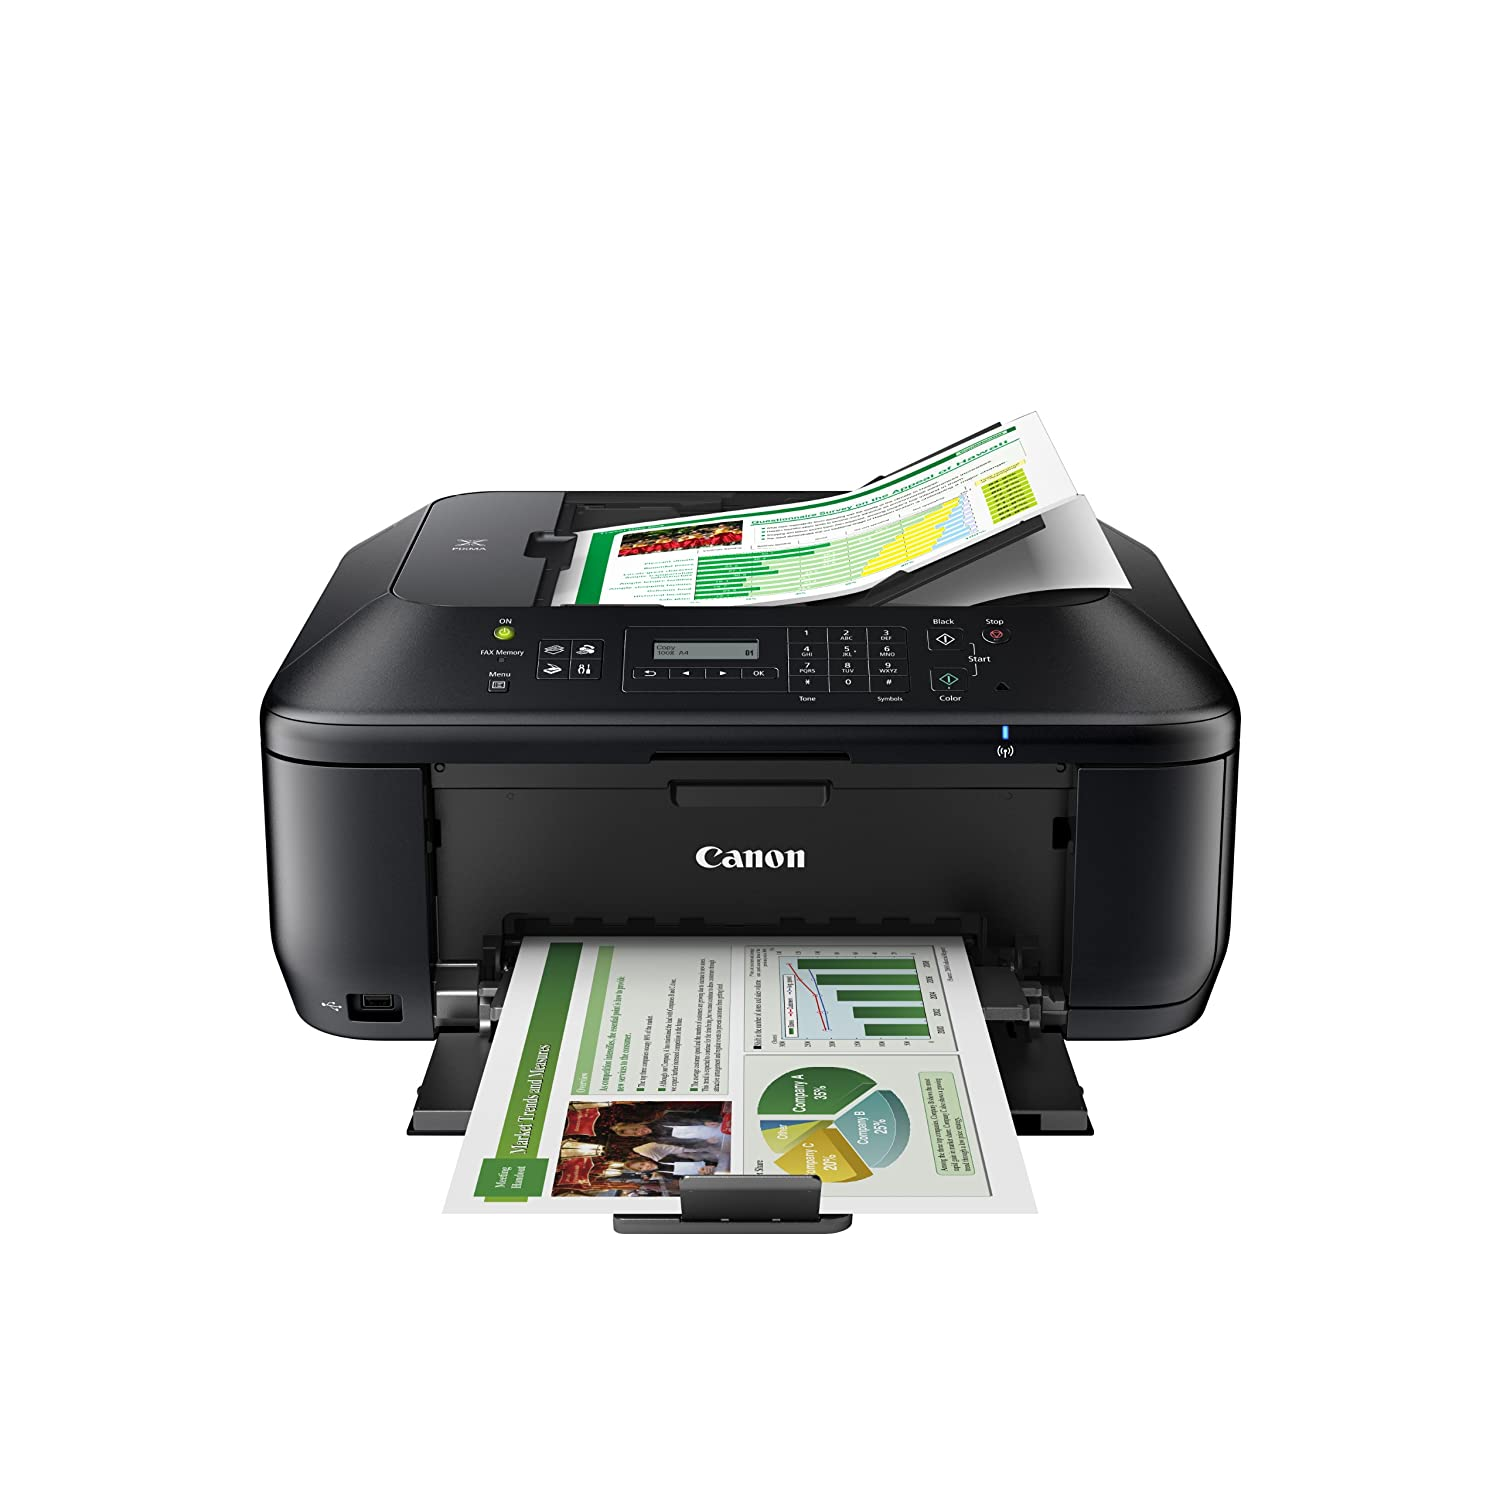 Canon PIXMA MX532 Wireless All-in-One Business Inkjet Printer with Scanner, Copier, Fax and Auto Document Feeder. 8750B003